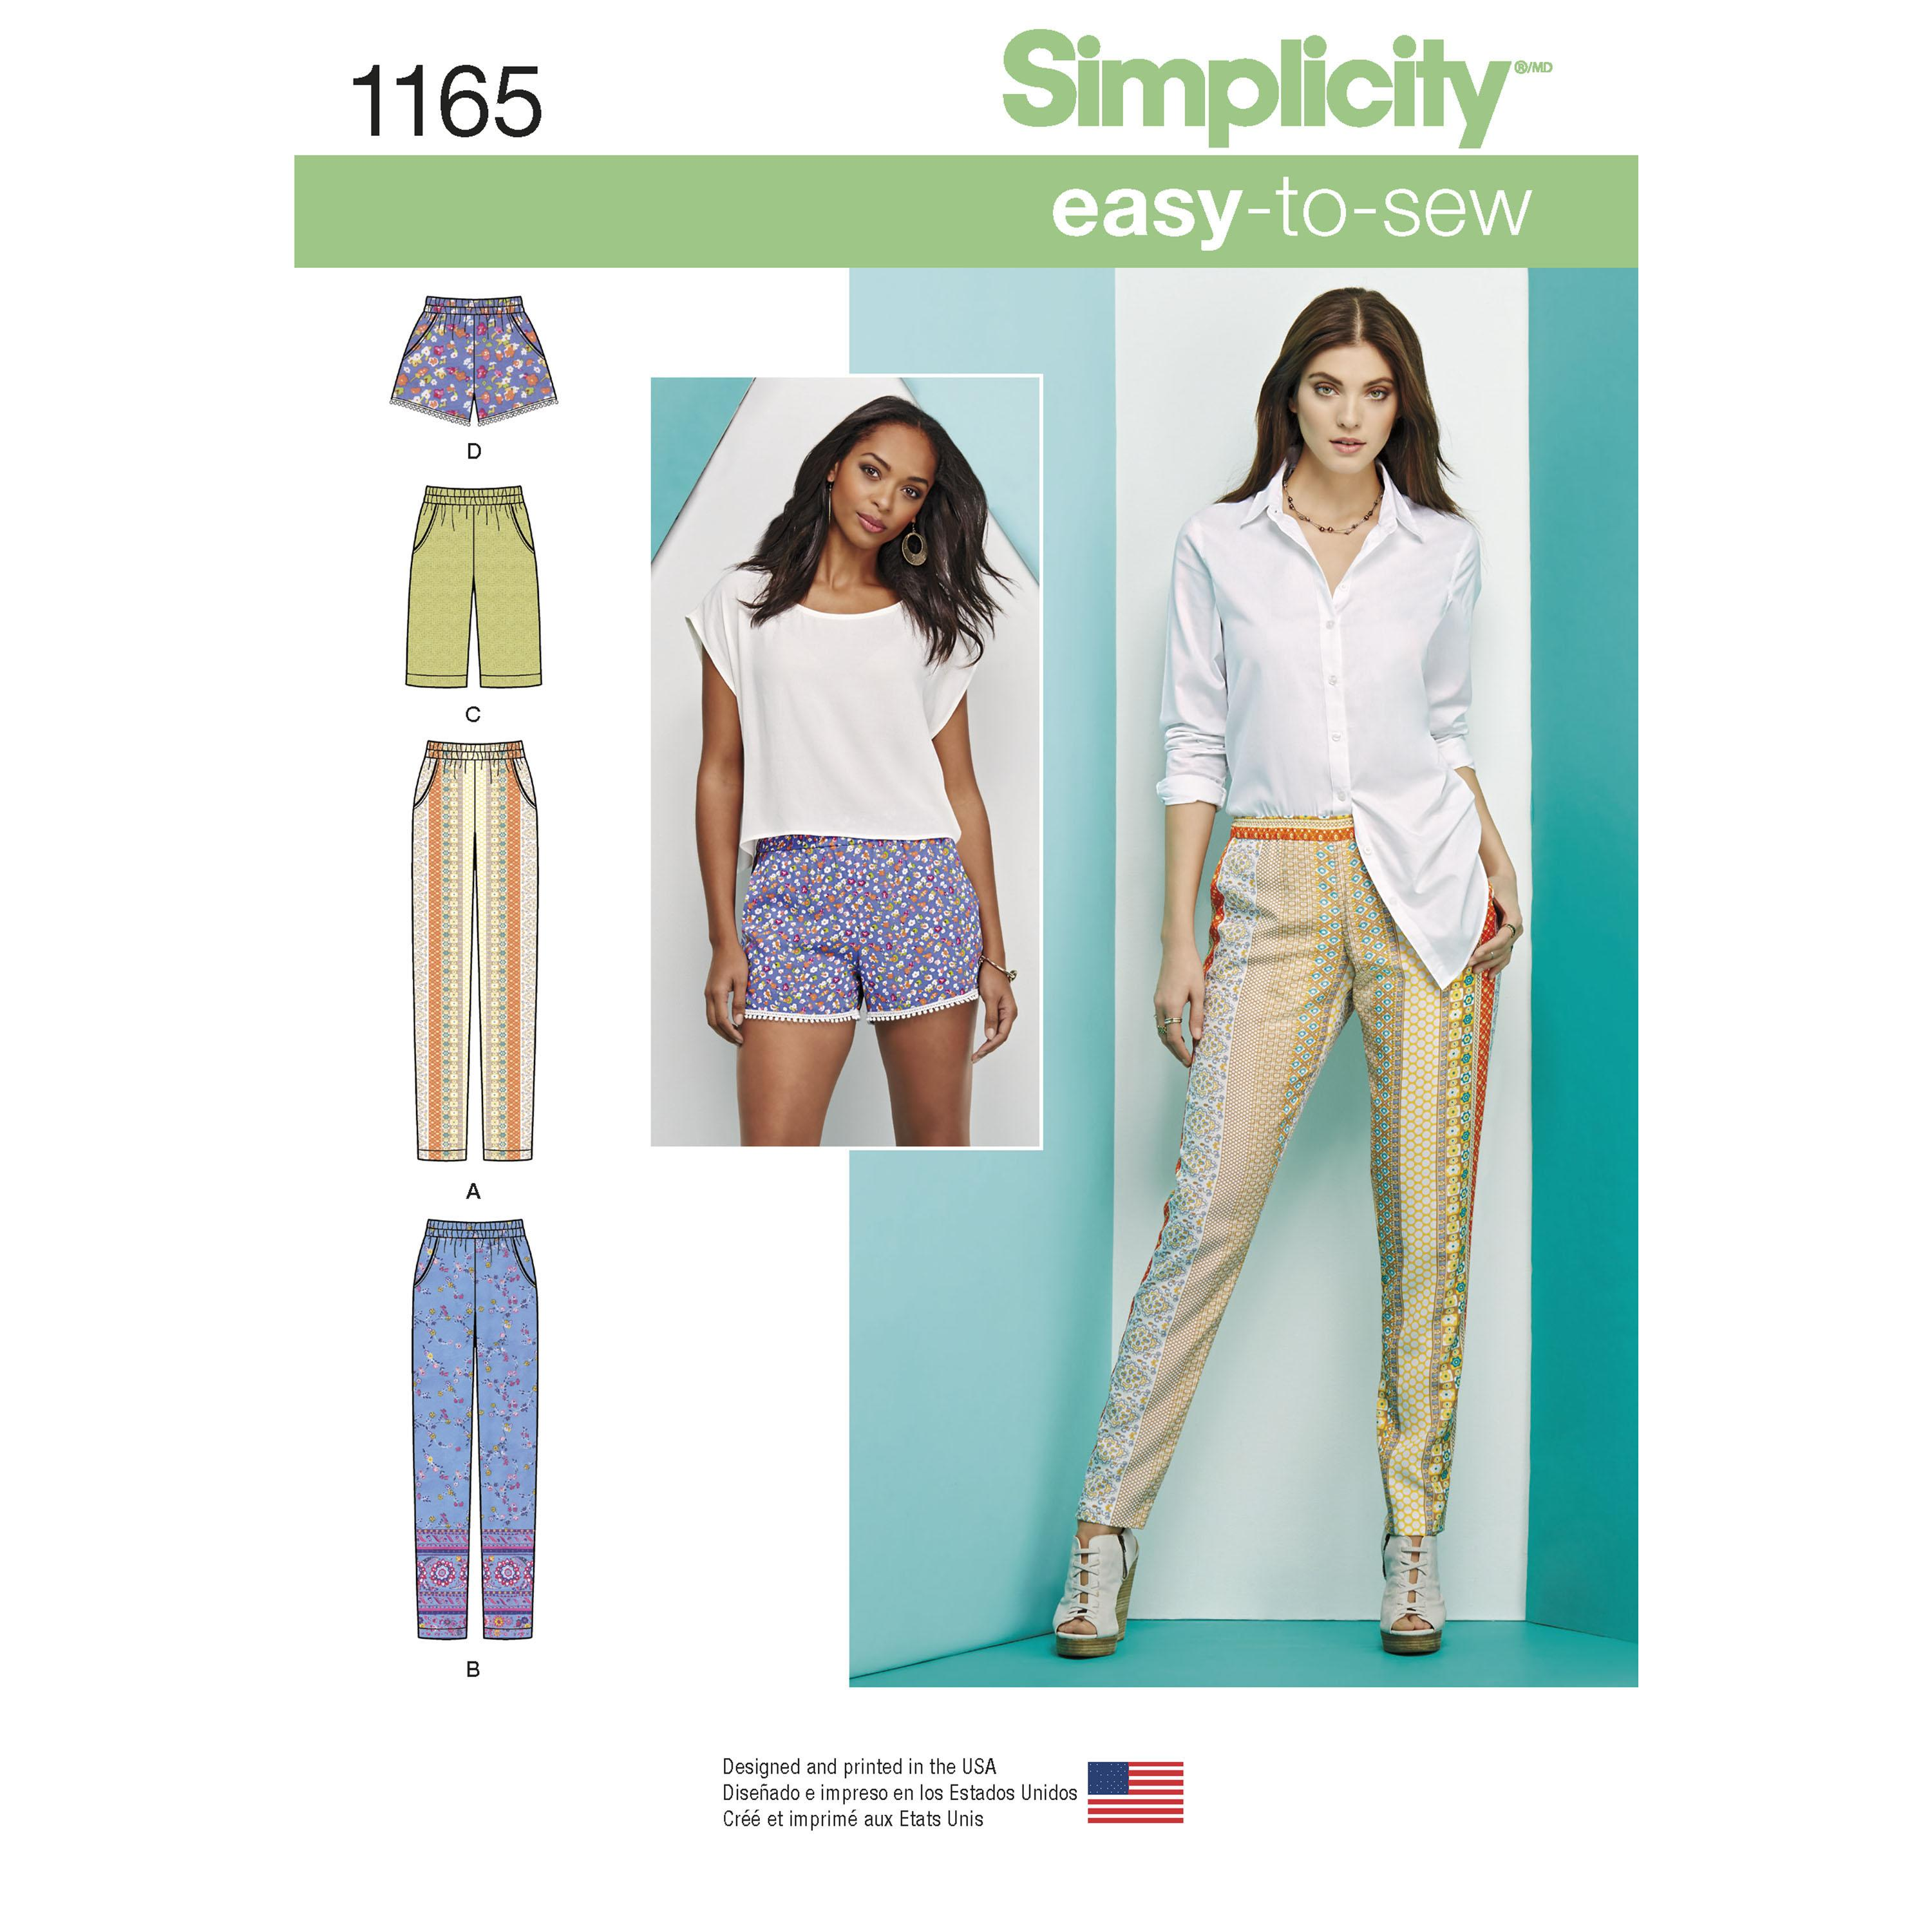 Simplicity S1165 Women's Pull-on Trousers, Long or Short Shorts